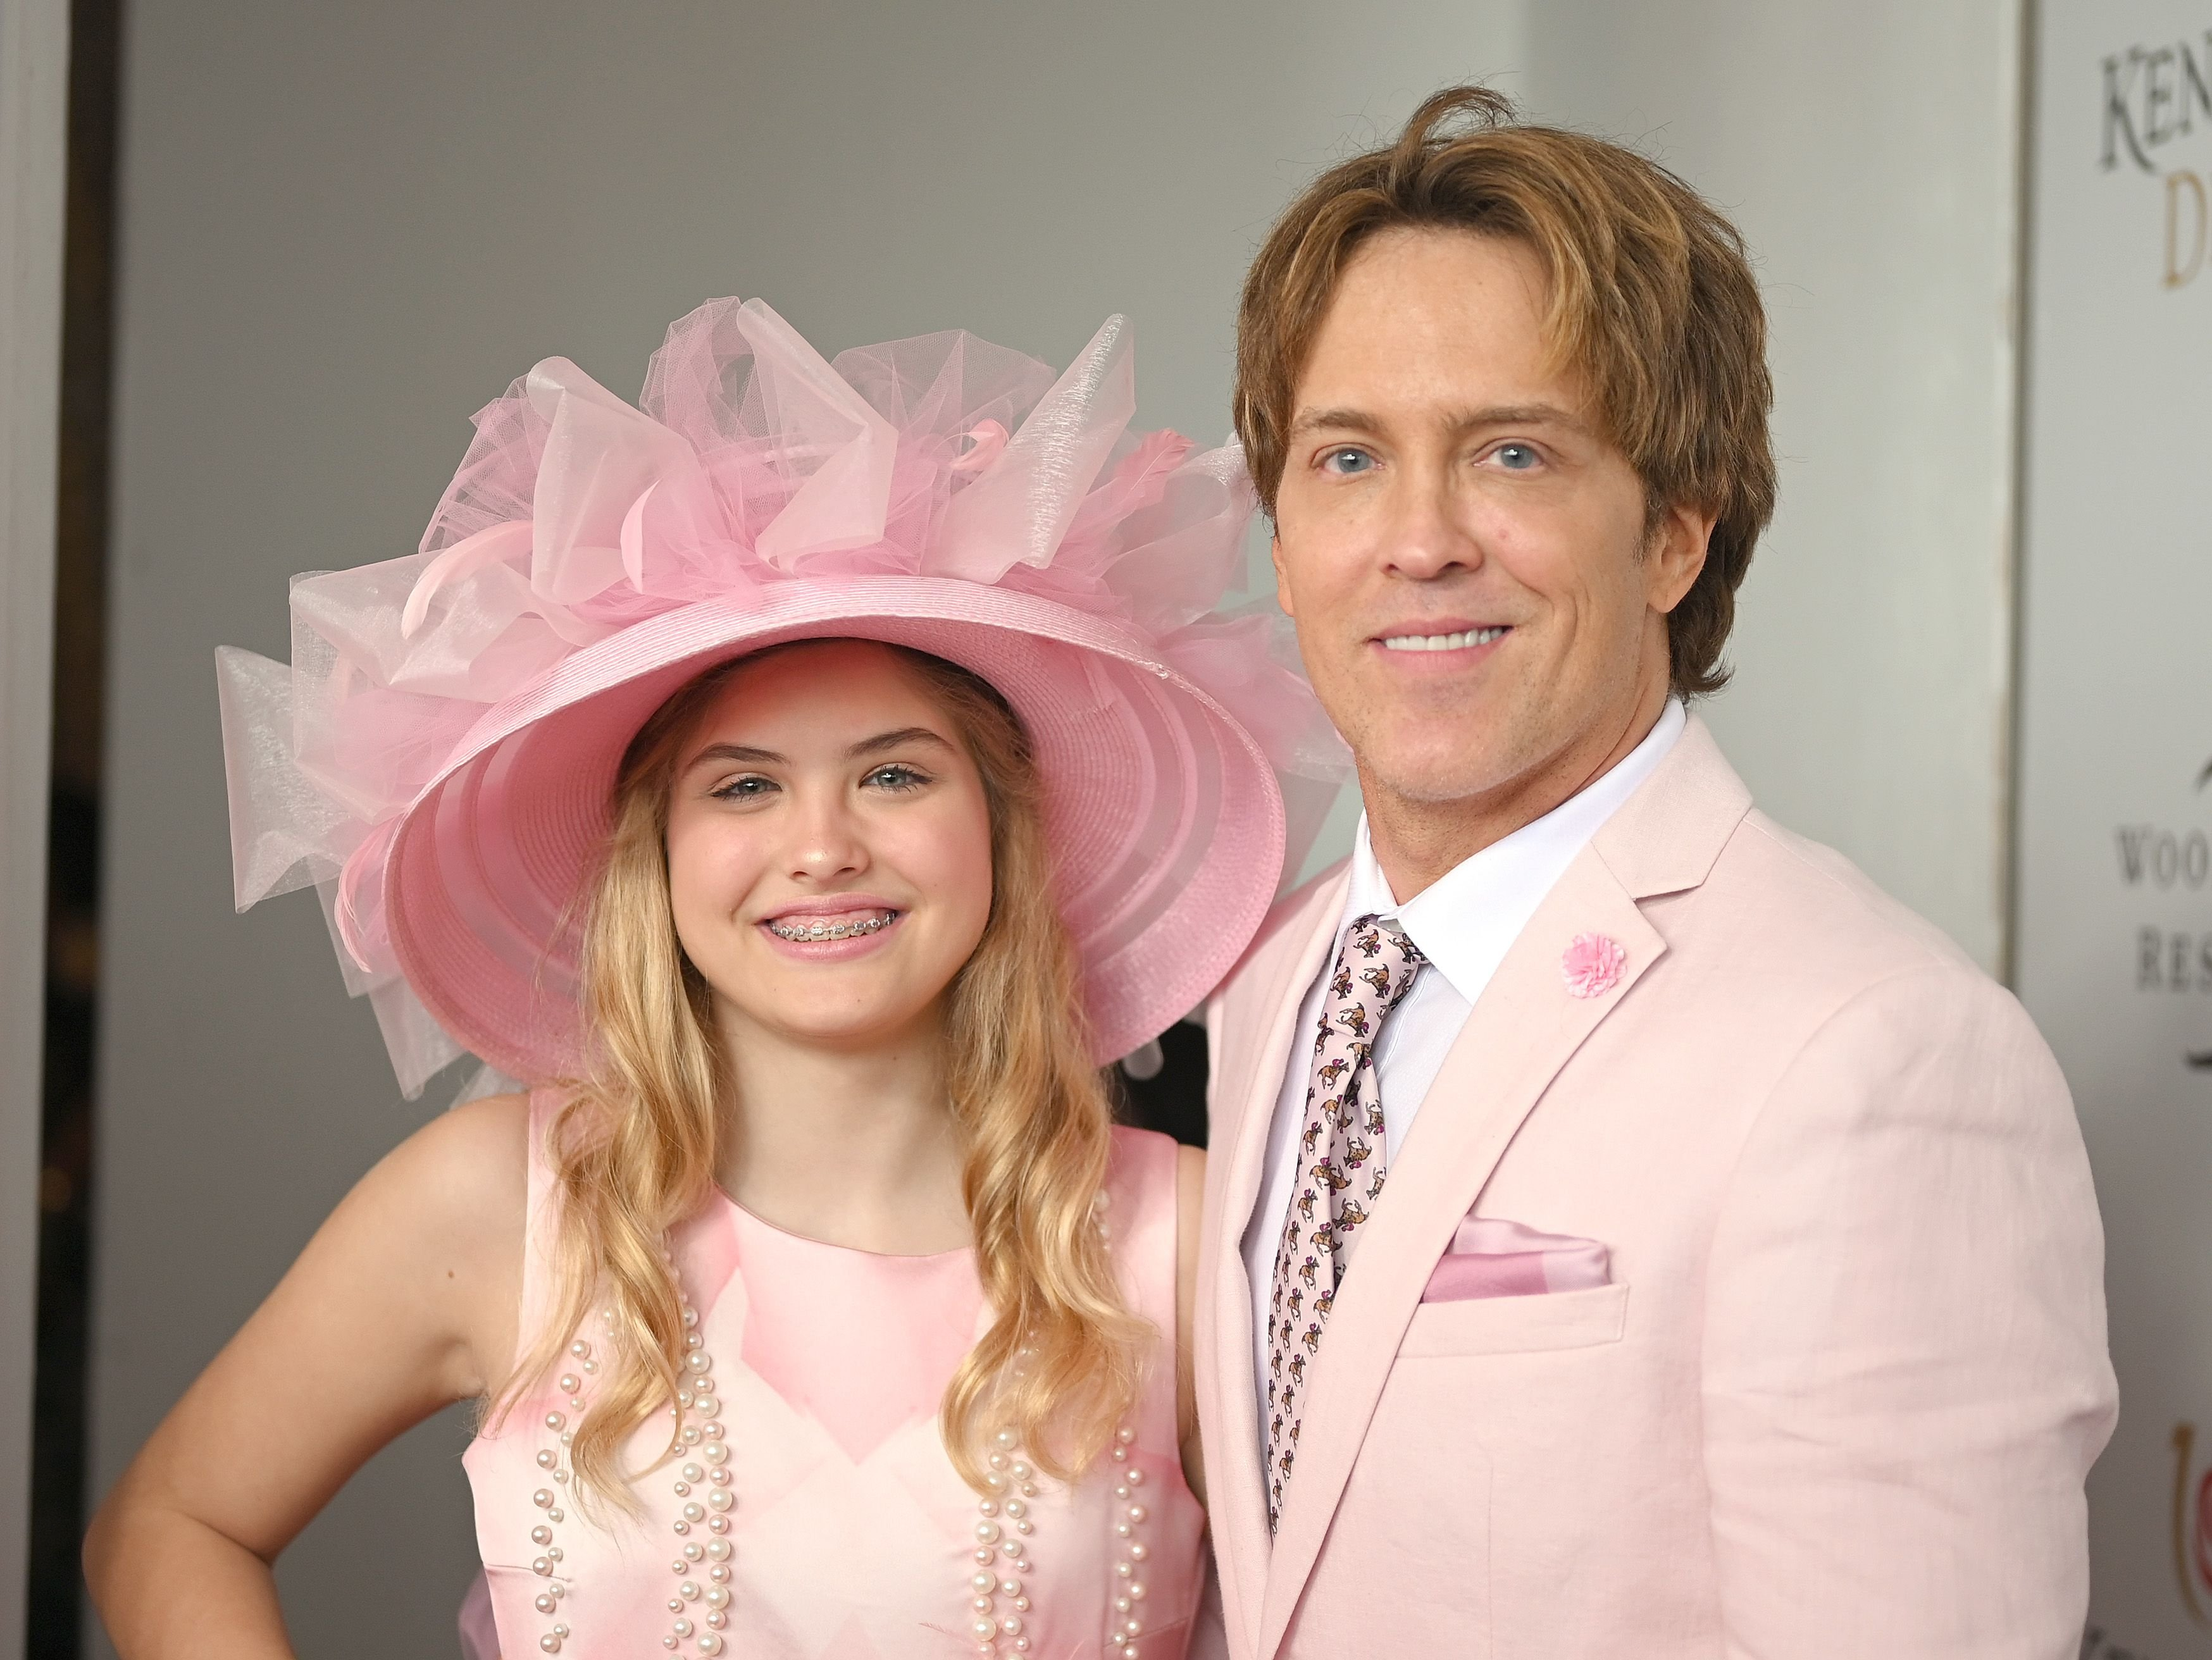 Dannielynn Birkhead and Larry Birkhead at the 145th Kentucky Derby on May 04, 2019 in Louisville | Getty Images